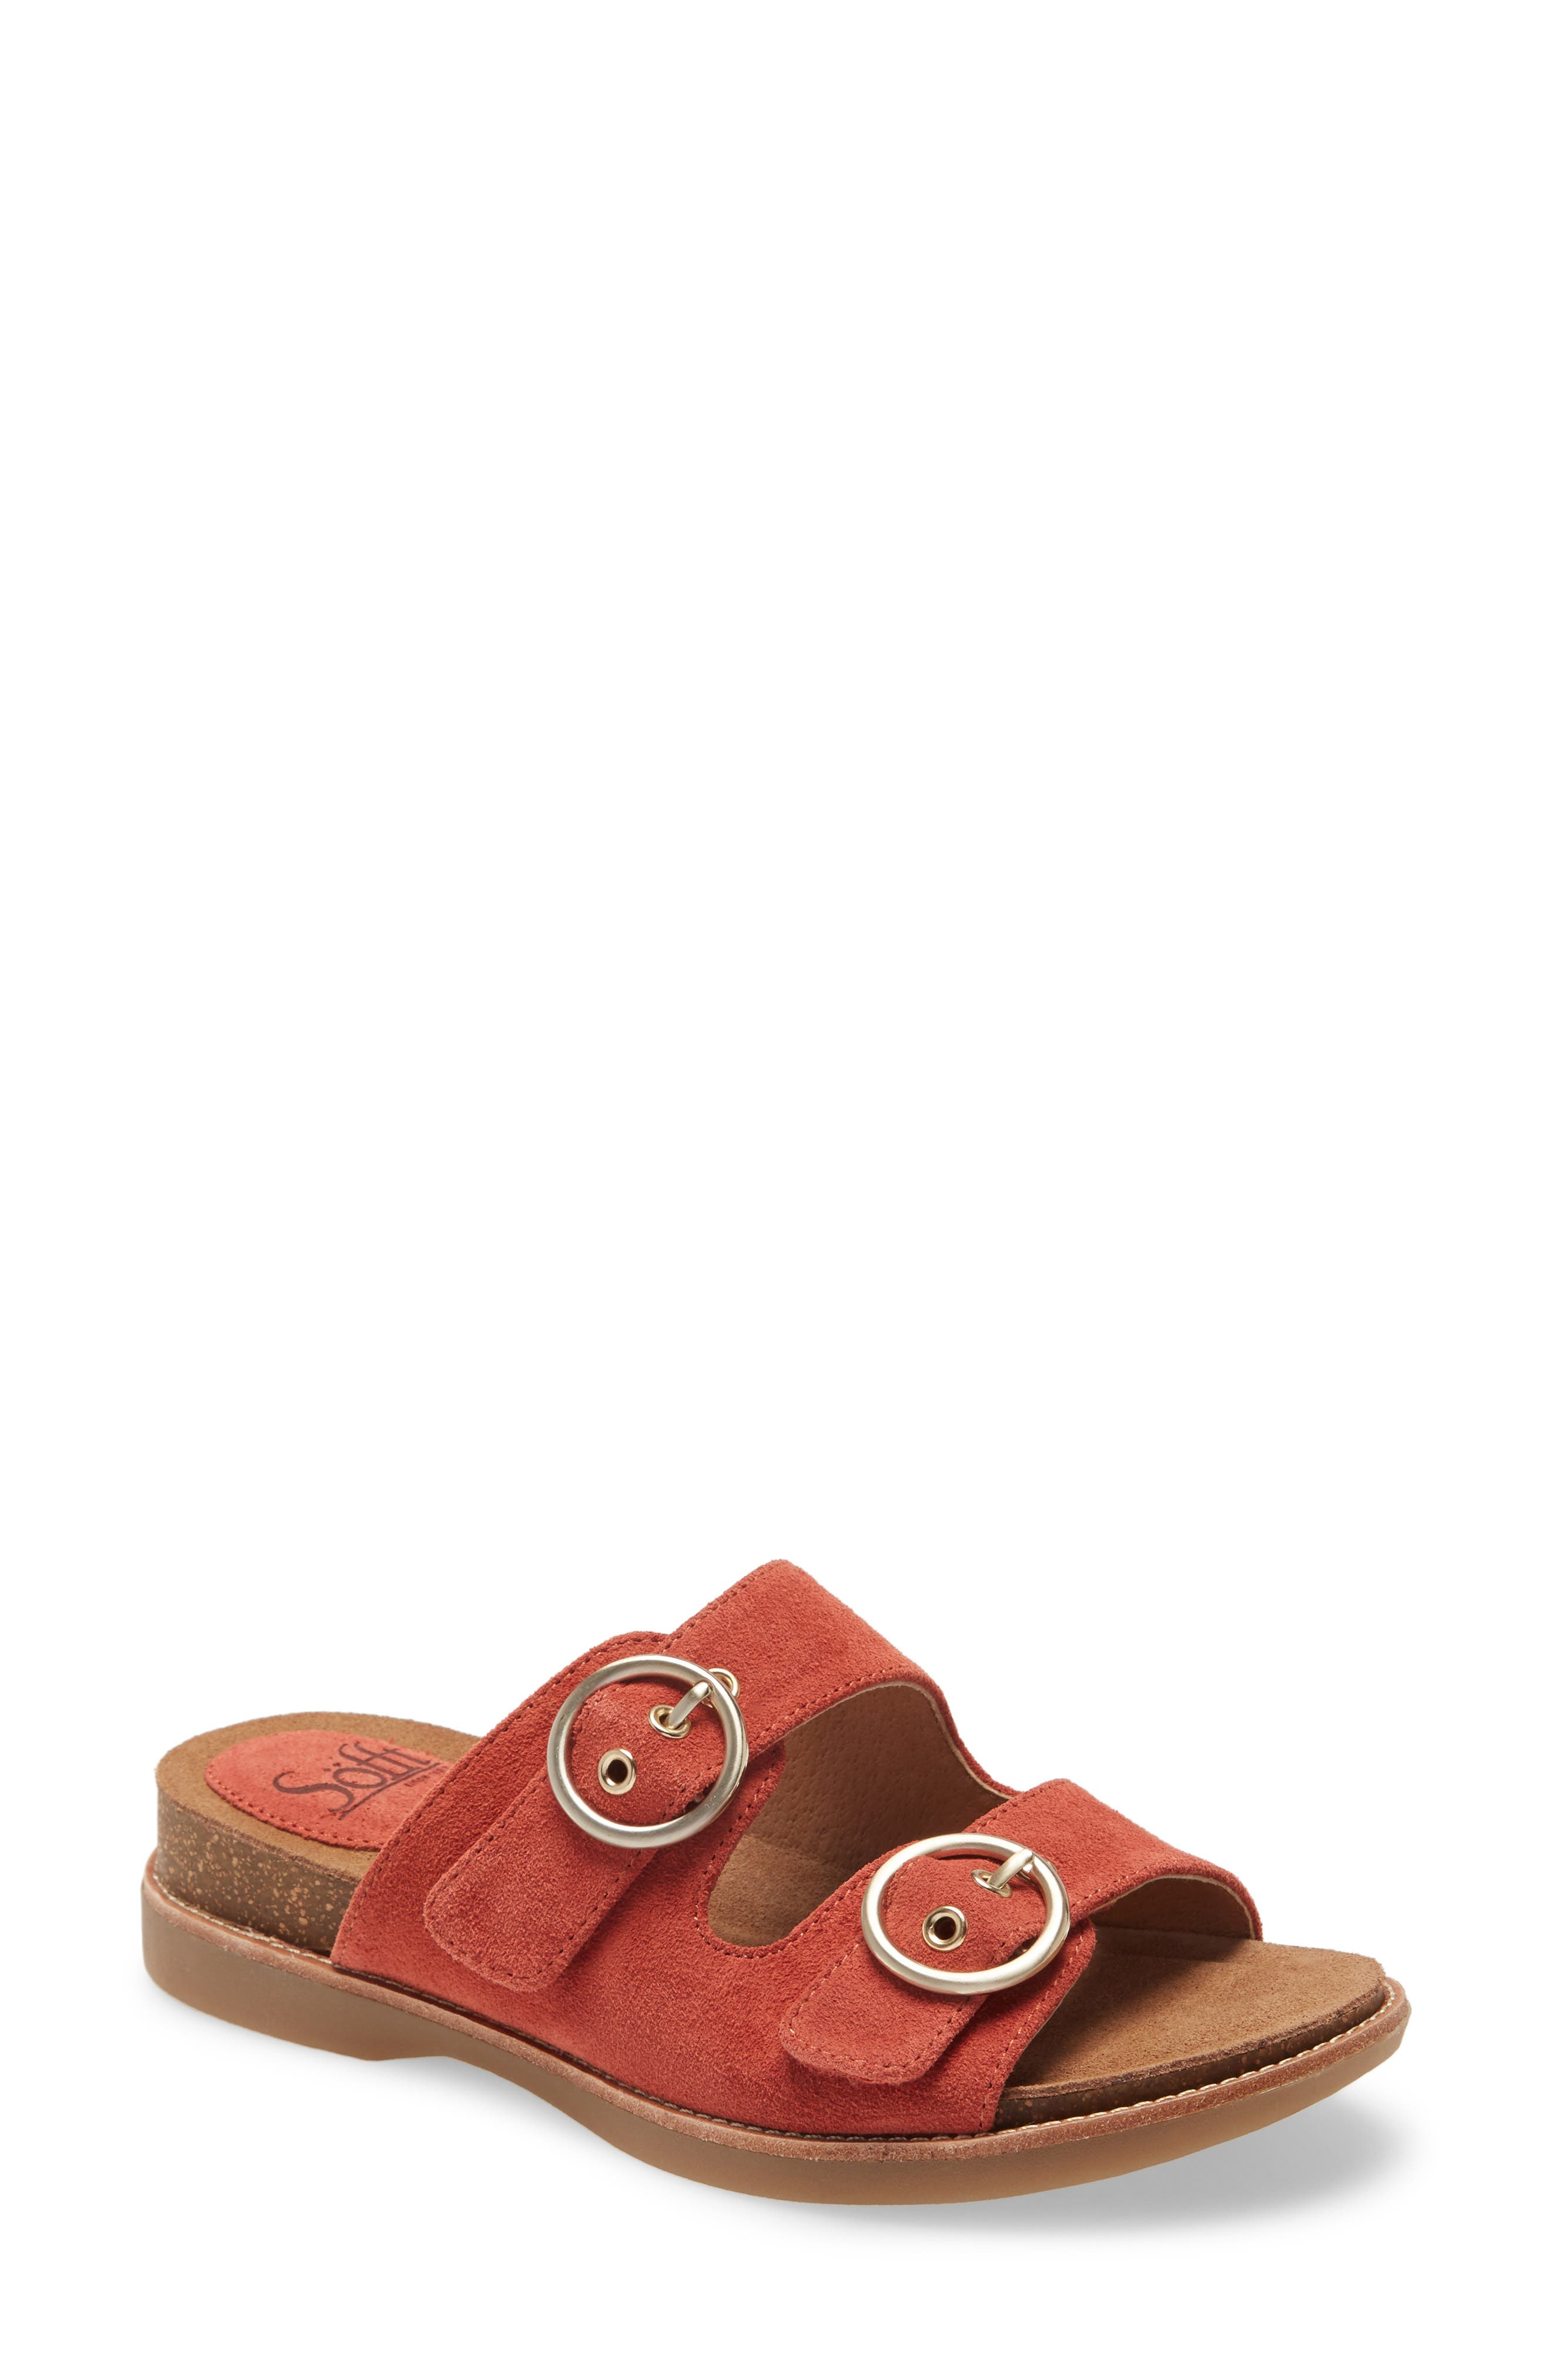 A high-density foam footbed conforms to your foot in this smart walking sandal with a stylish two-buckle strap. Style Name: Softt Brooklyn Sandal (Women). Style Number: 5993840. Available in stores.